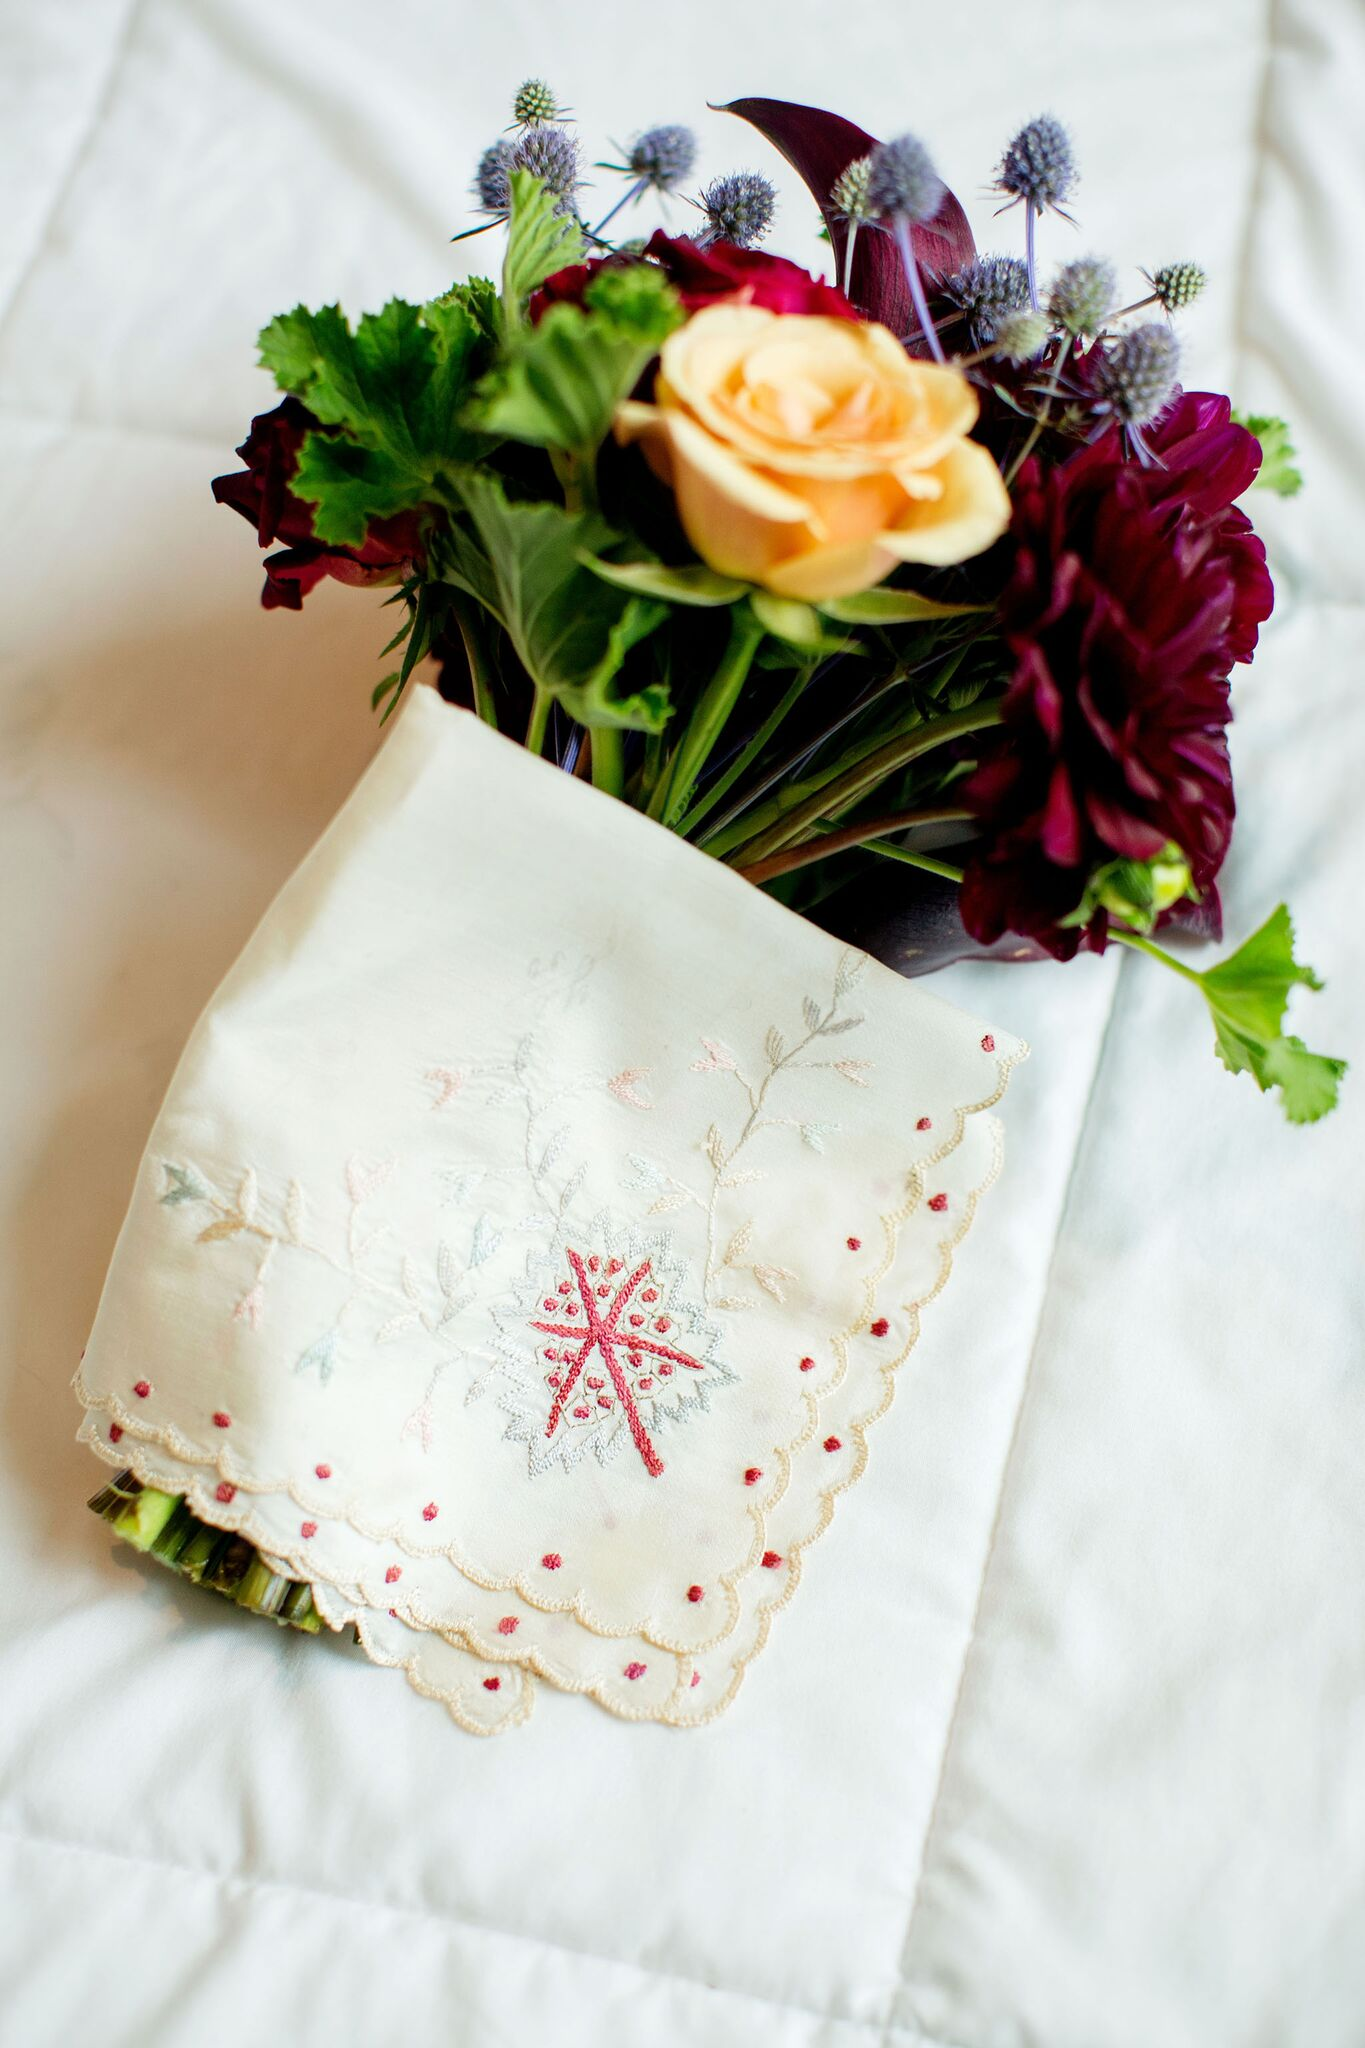 embroidered bridal handkerchief and jewel toned bouquet   Brides Handkerchief   Planning By Wrap It Up Parties